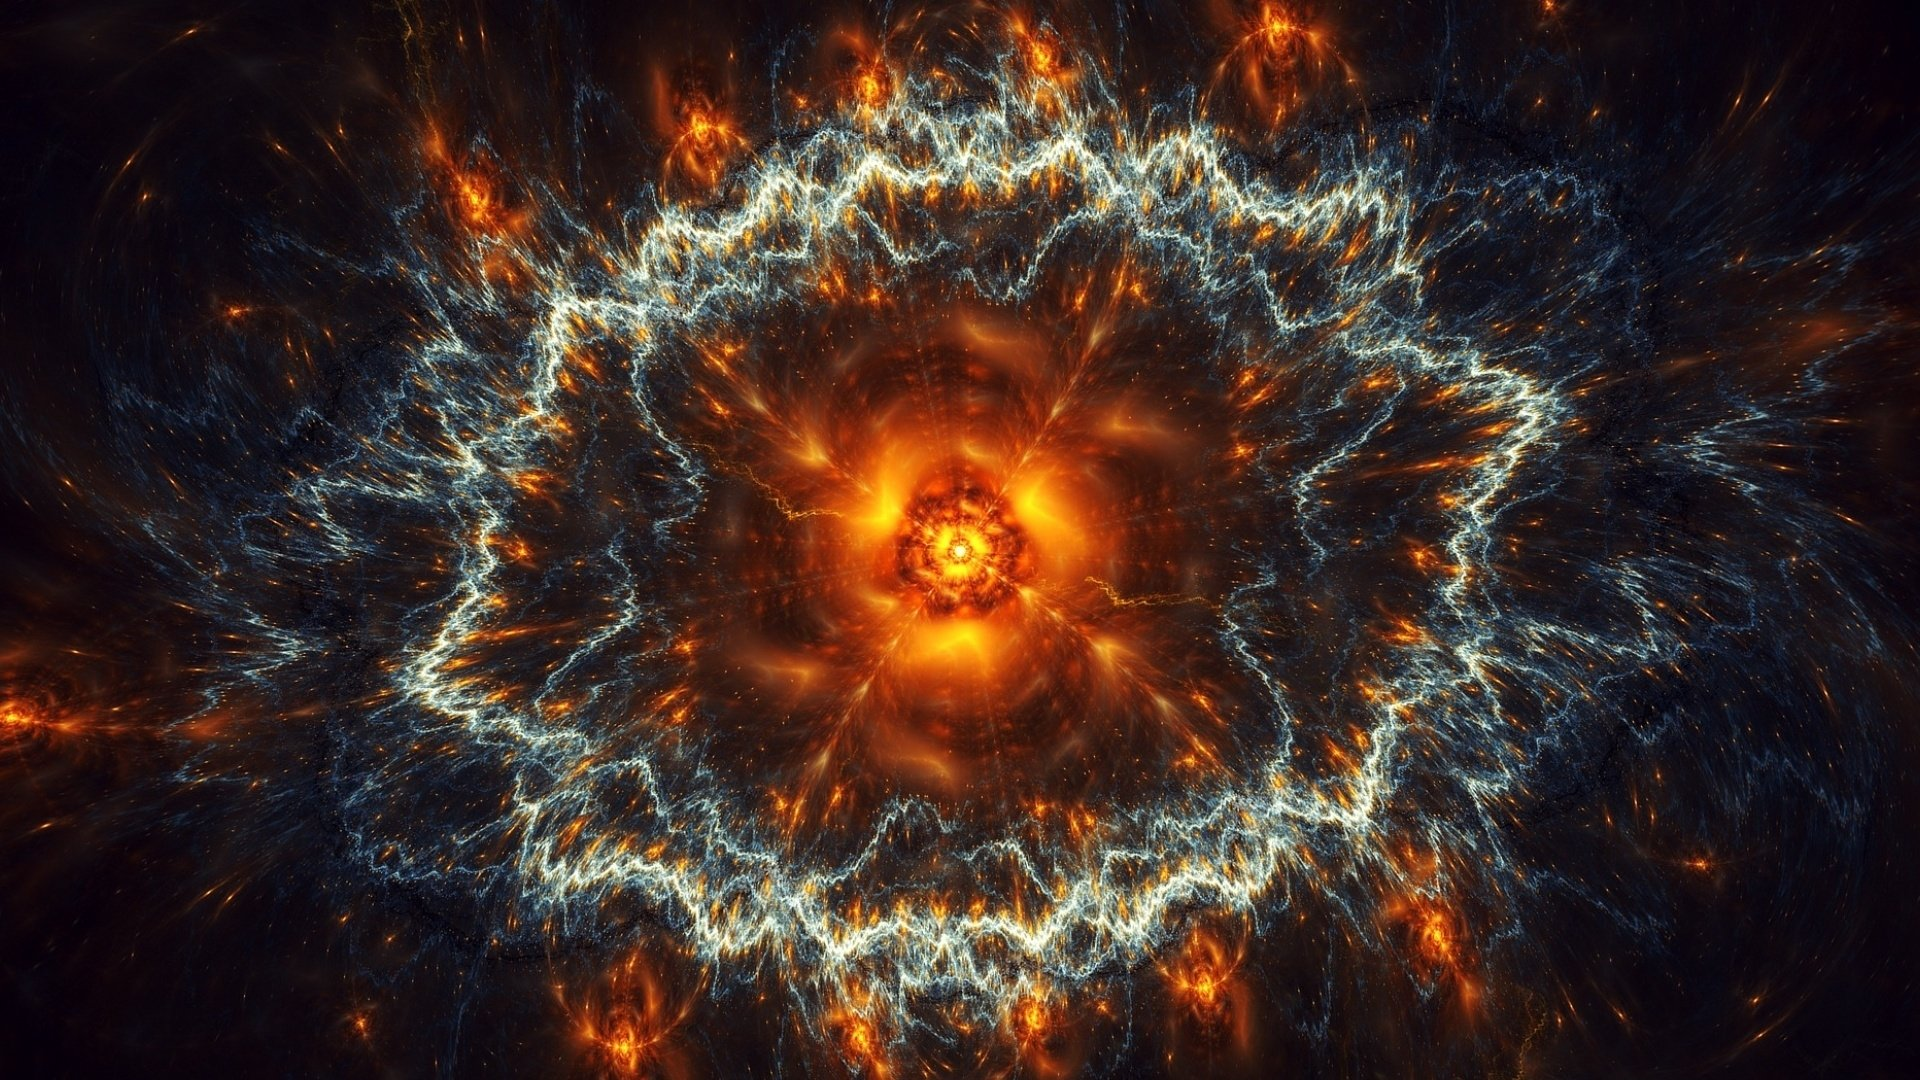 Supernova HD Wallpaper | Background Image | 1920x1080 | ID ...